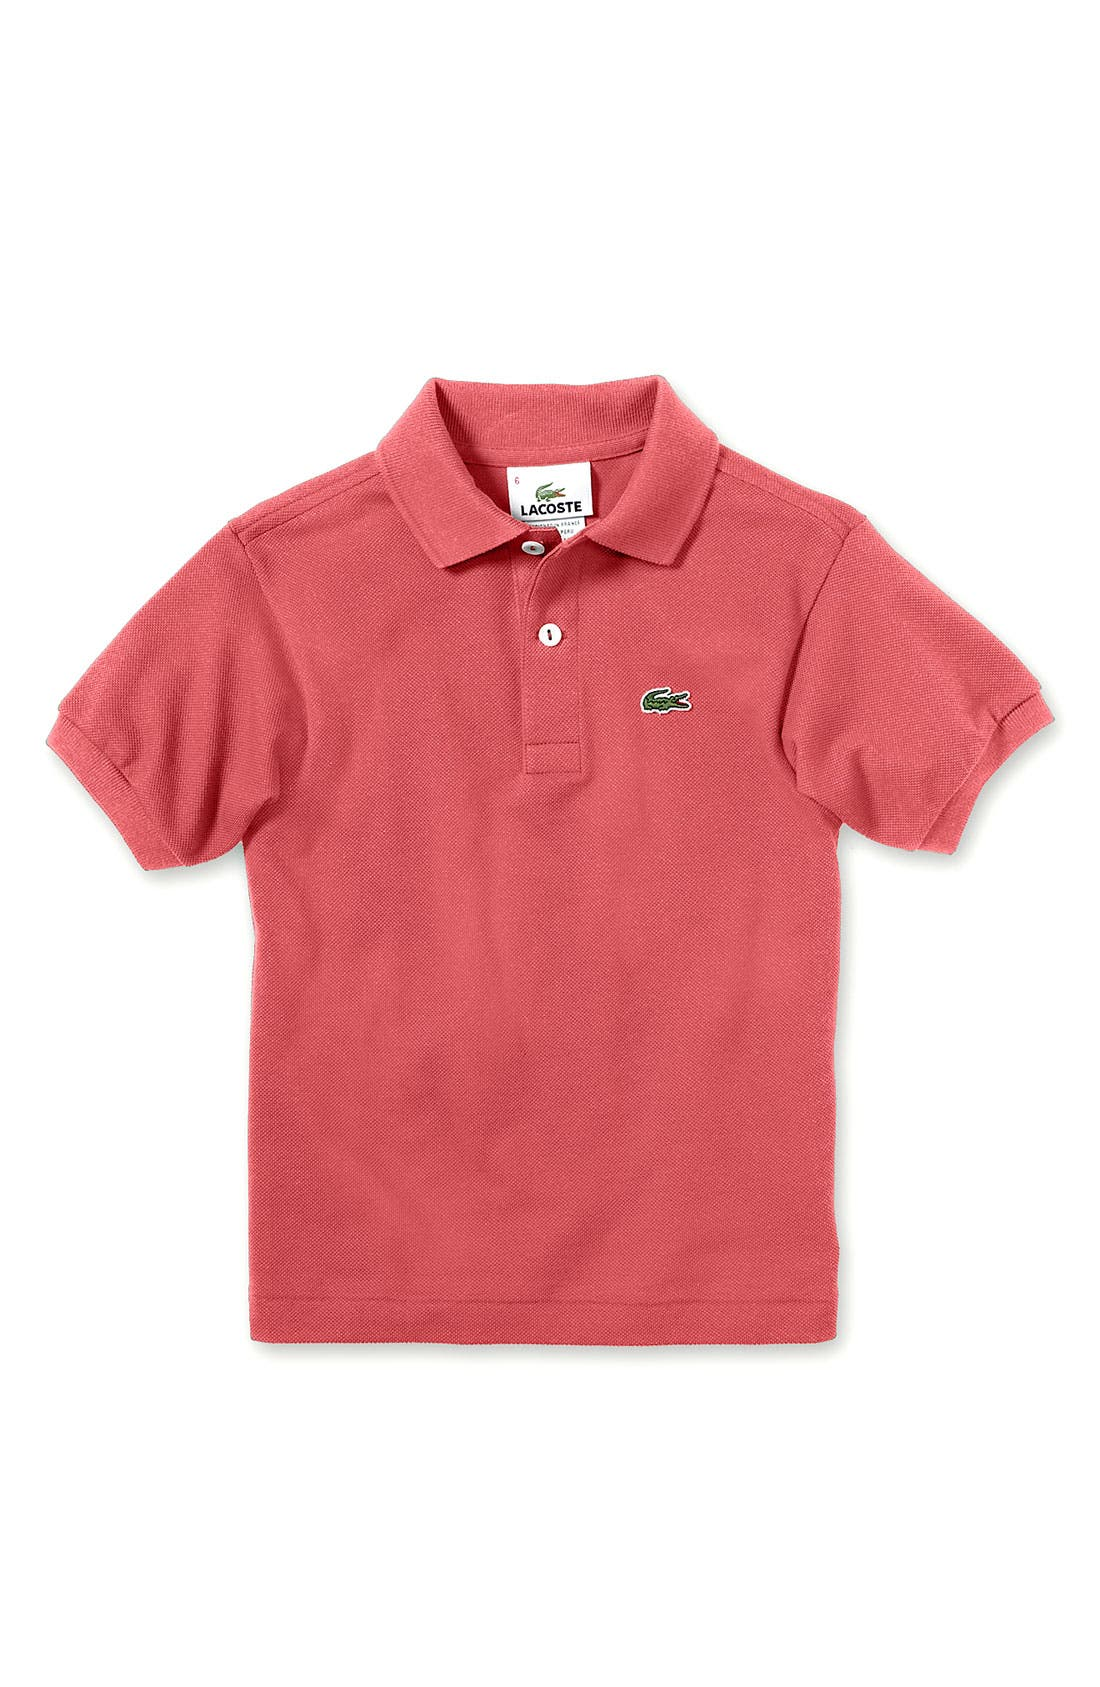 Alternate Image 1 Selected - Lacoste Short Sleeve Piqué Polo (Little Boys & Big Boys)